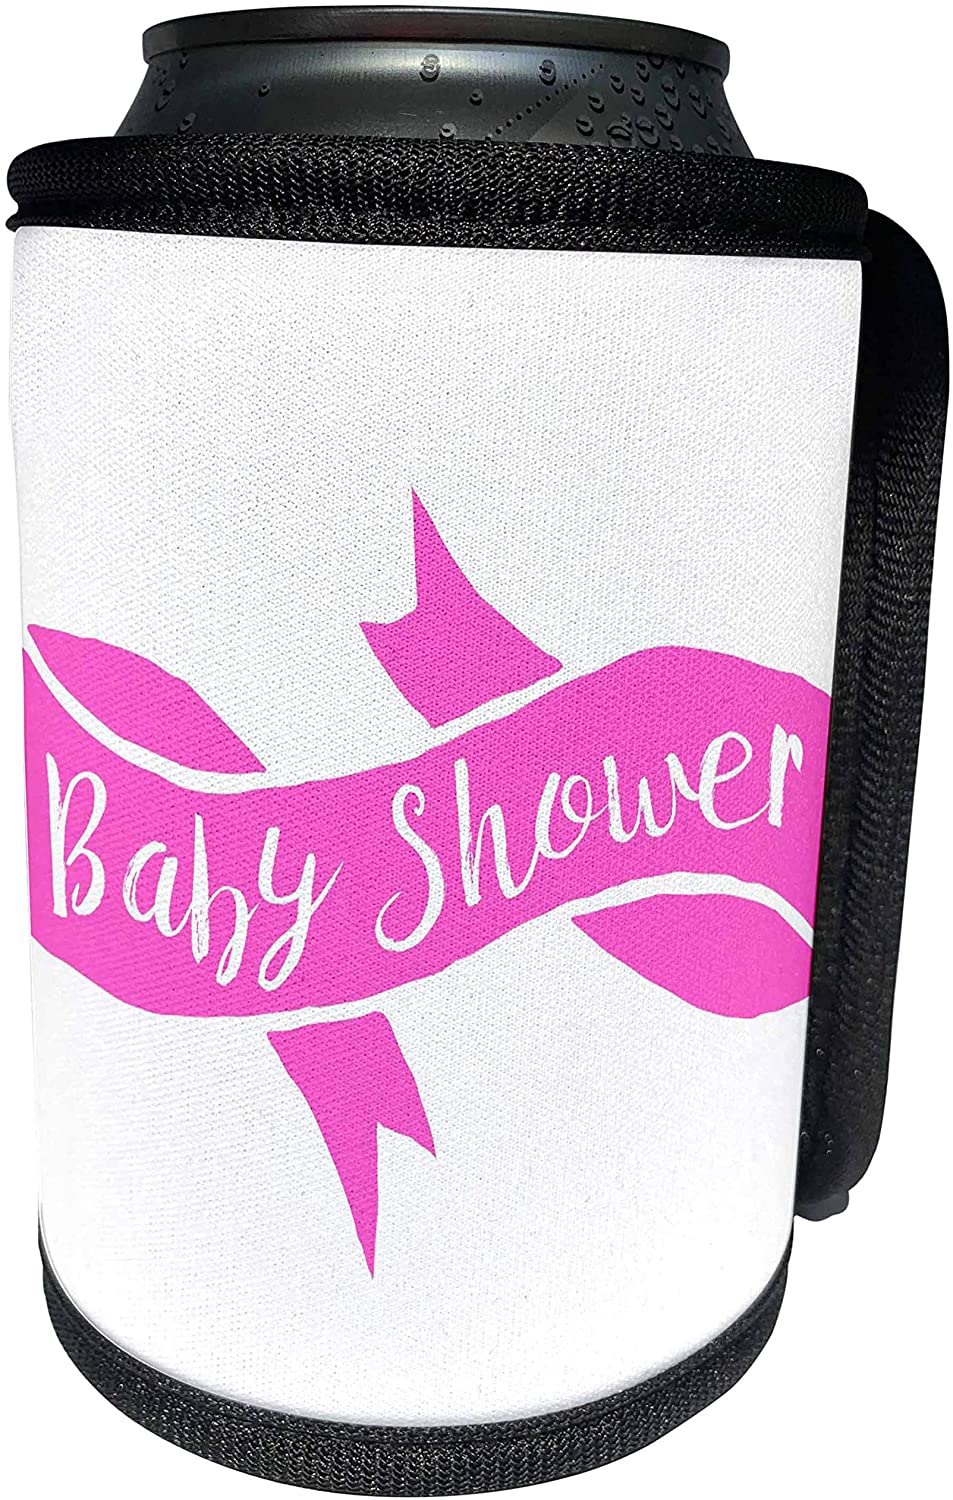 3dRose Xander announcement quotes - Baby shower, pink lettering on a pink banner - Can Cooler Bottle Wrap (cc_256518_1)